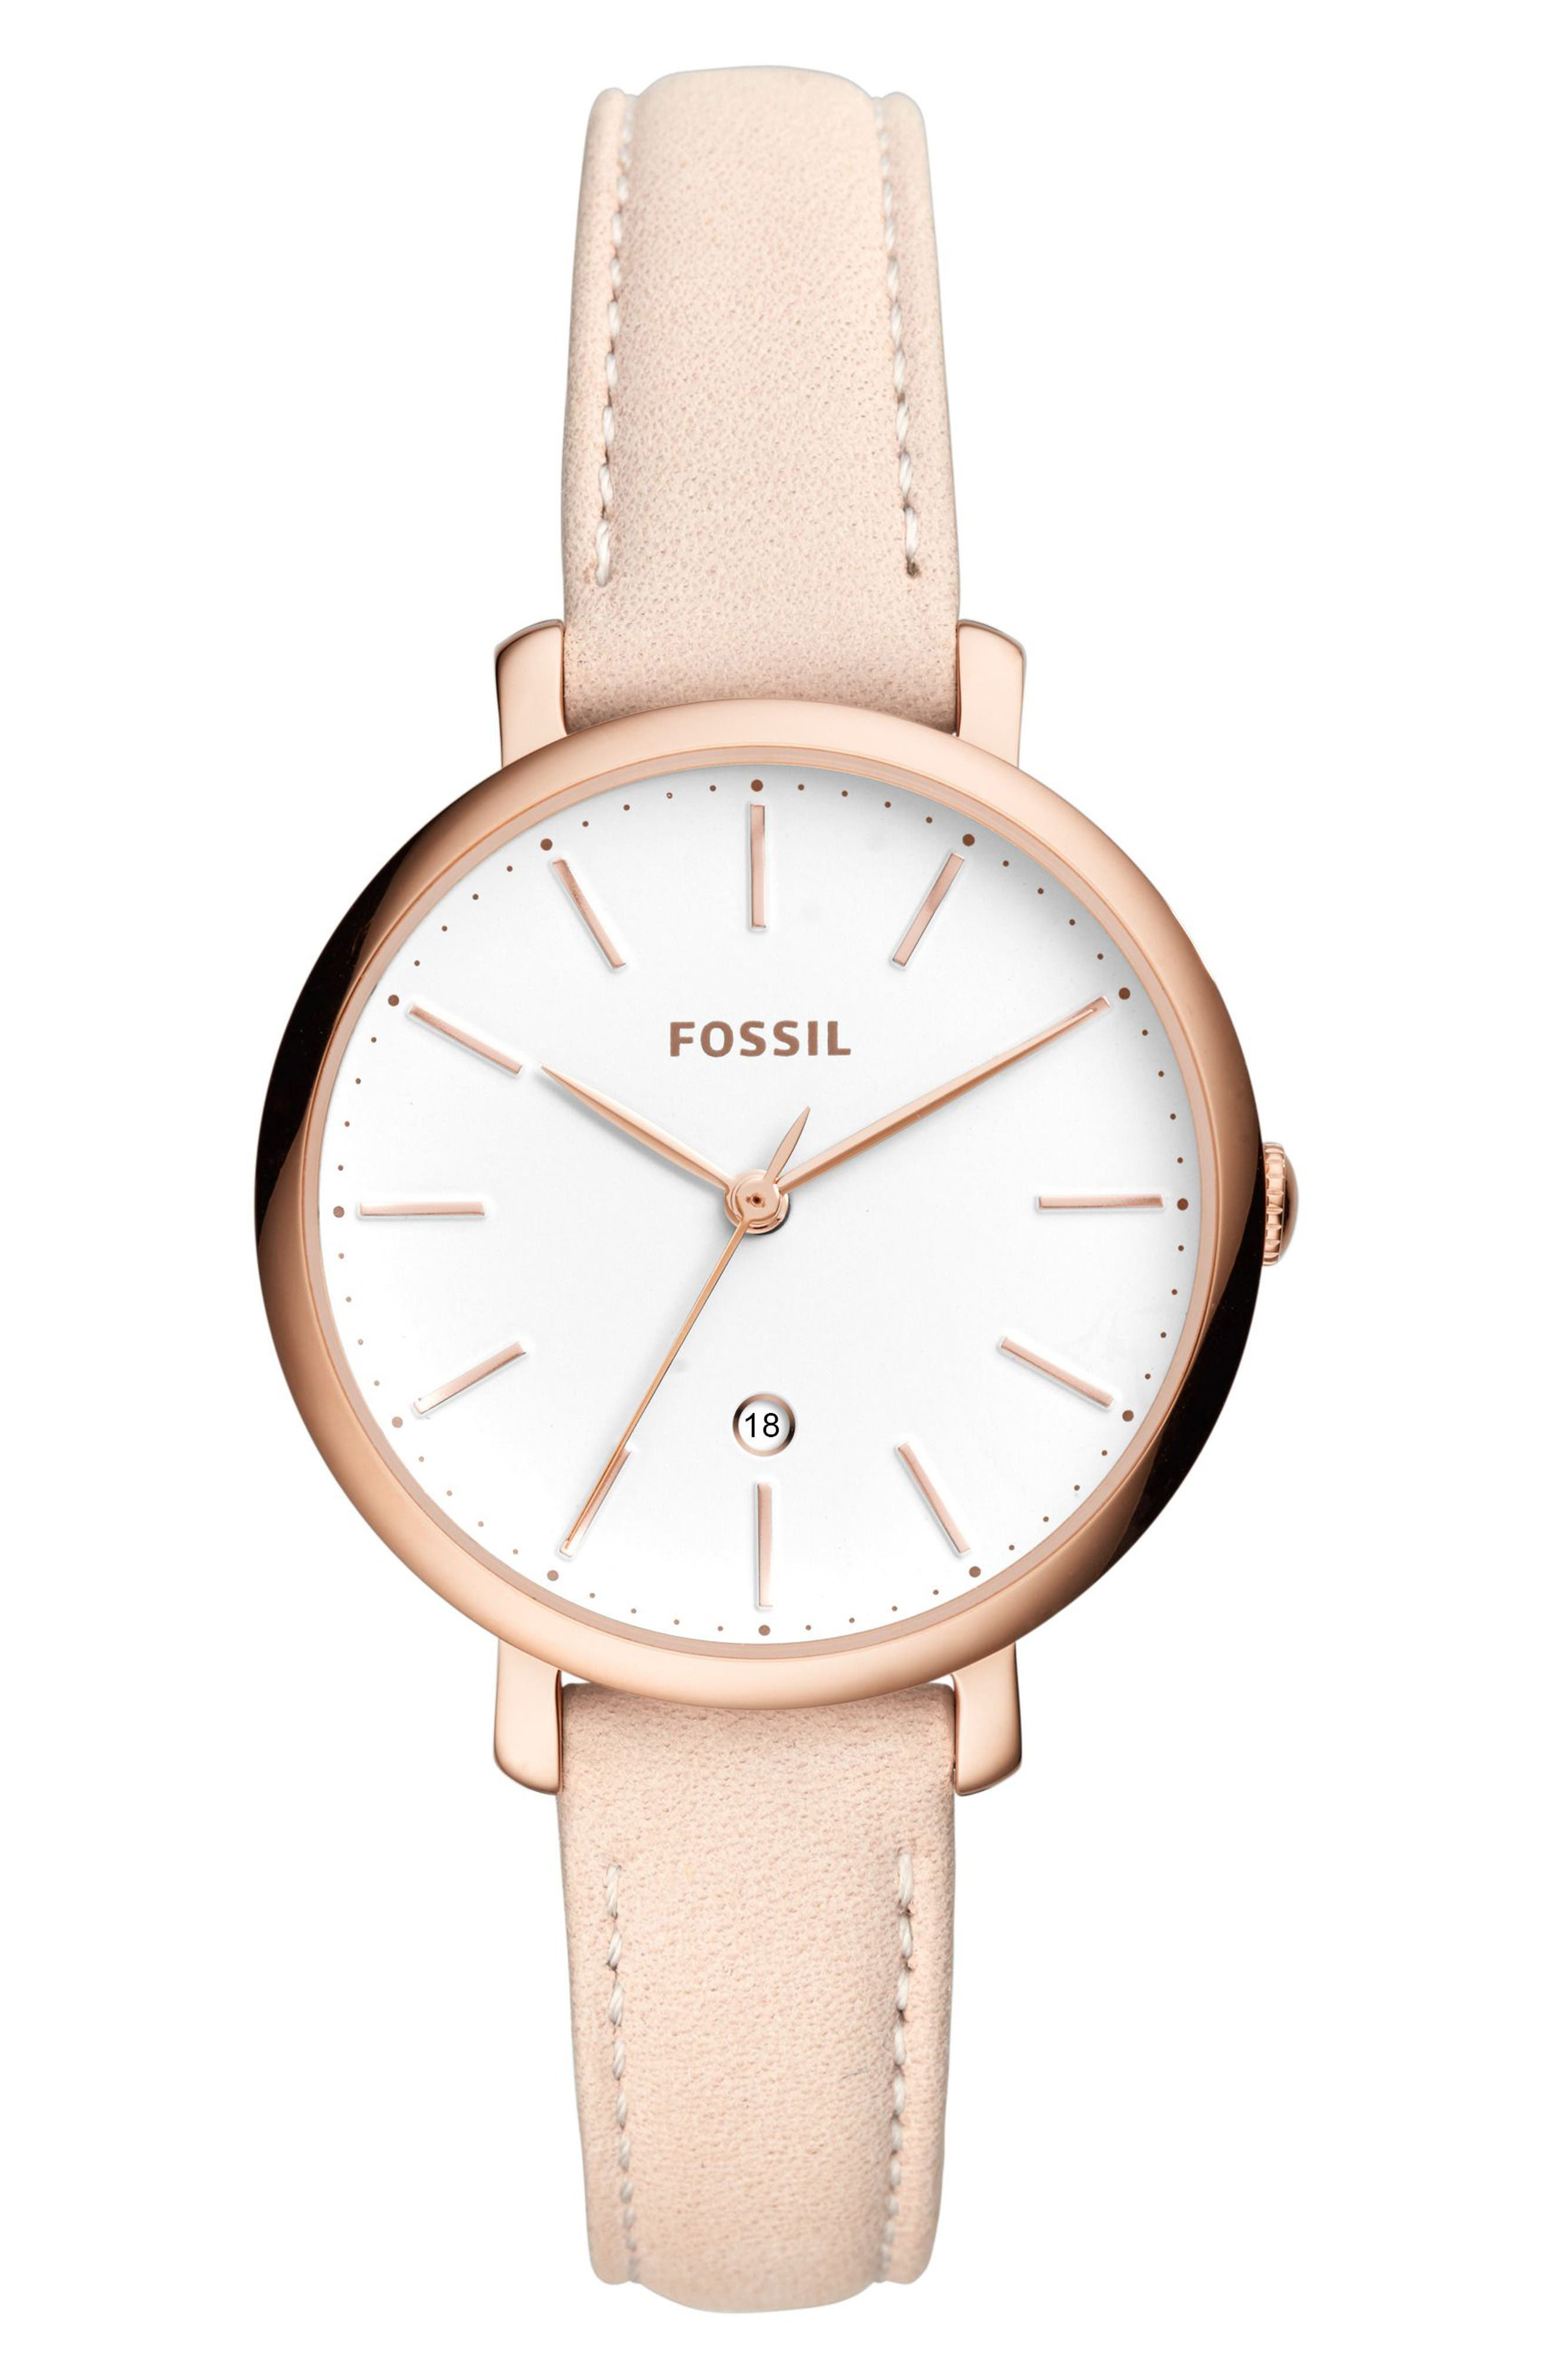 FOSSIL, Jacqueline Leather Strap Watch, 36mm, Main thumbnail 1, color, BEIGE/ WHITE/ ROSE GOLD